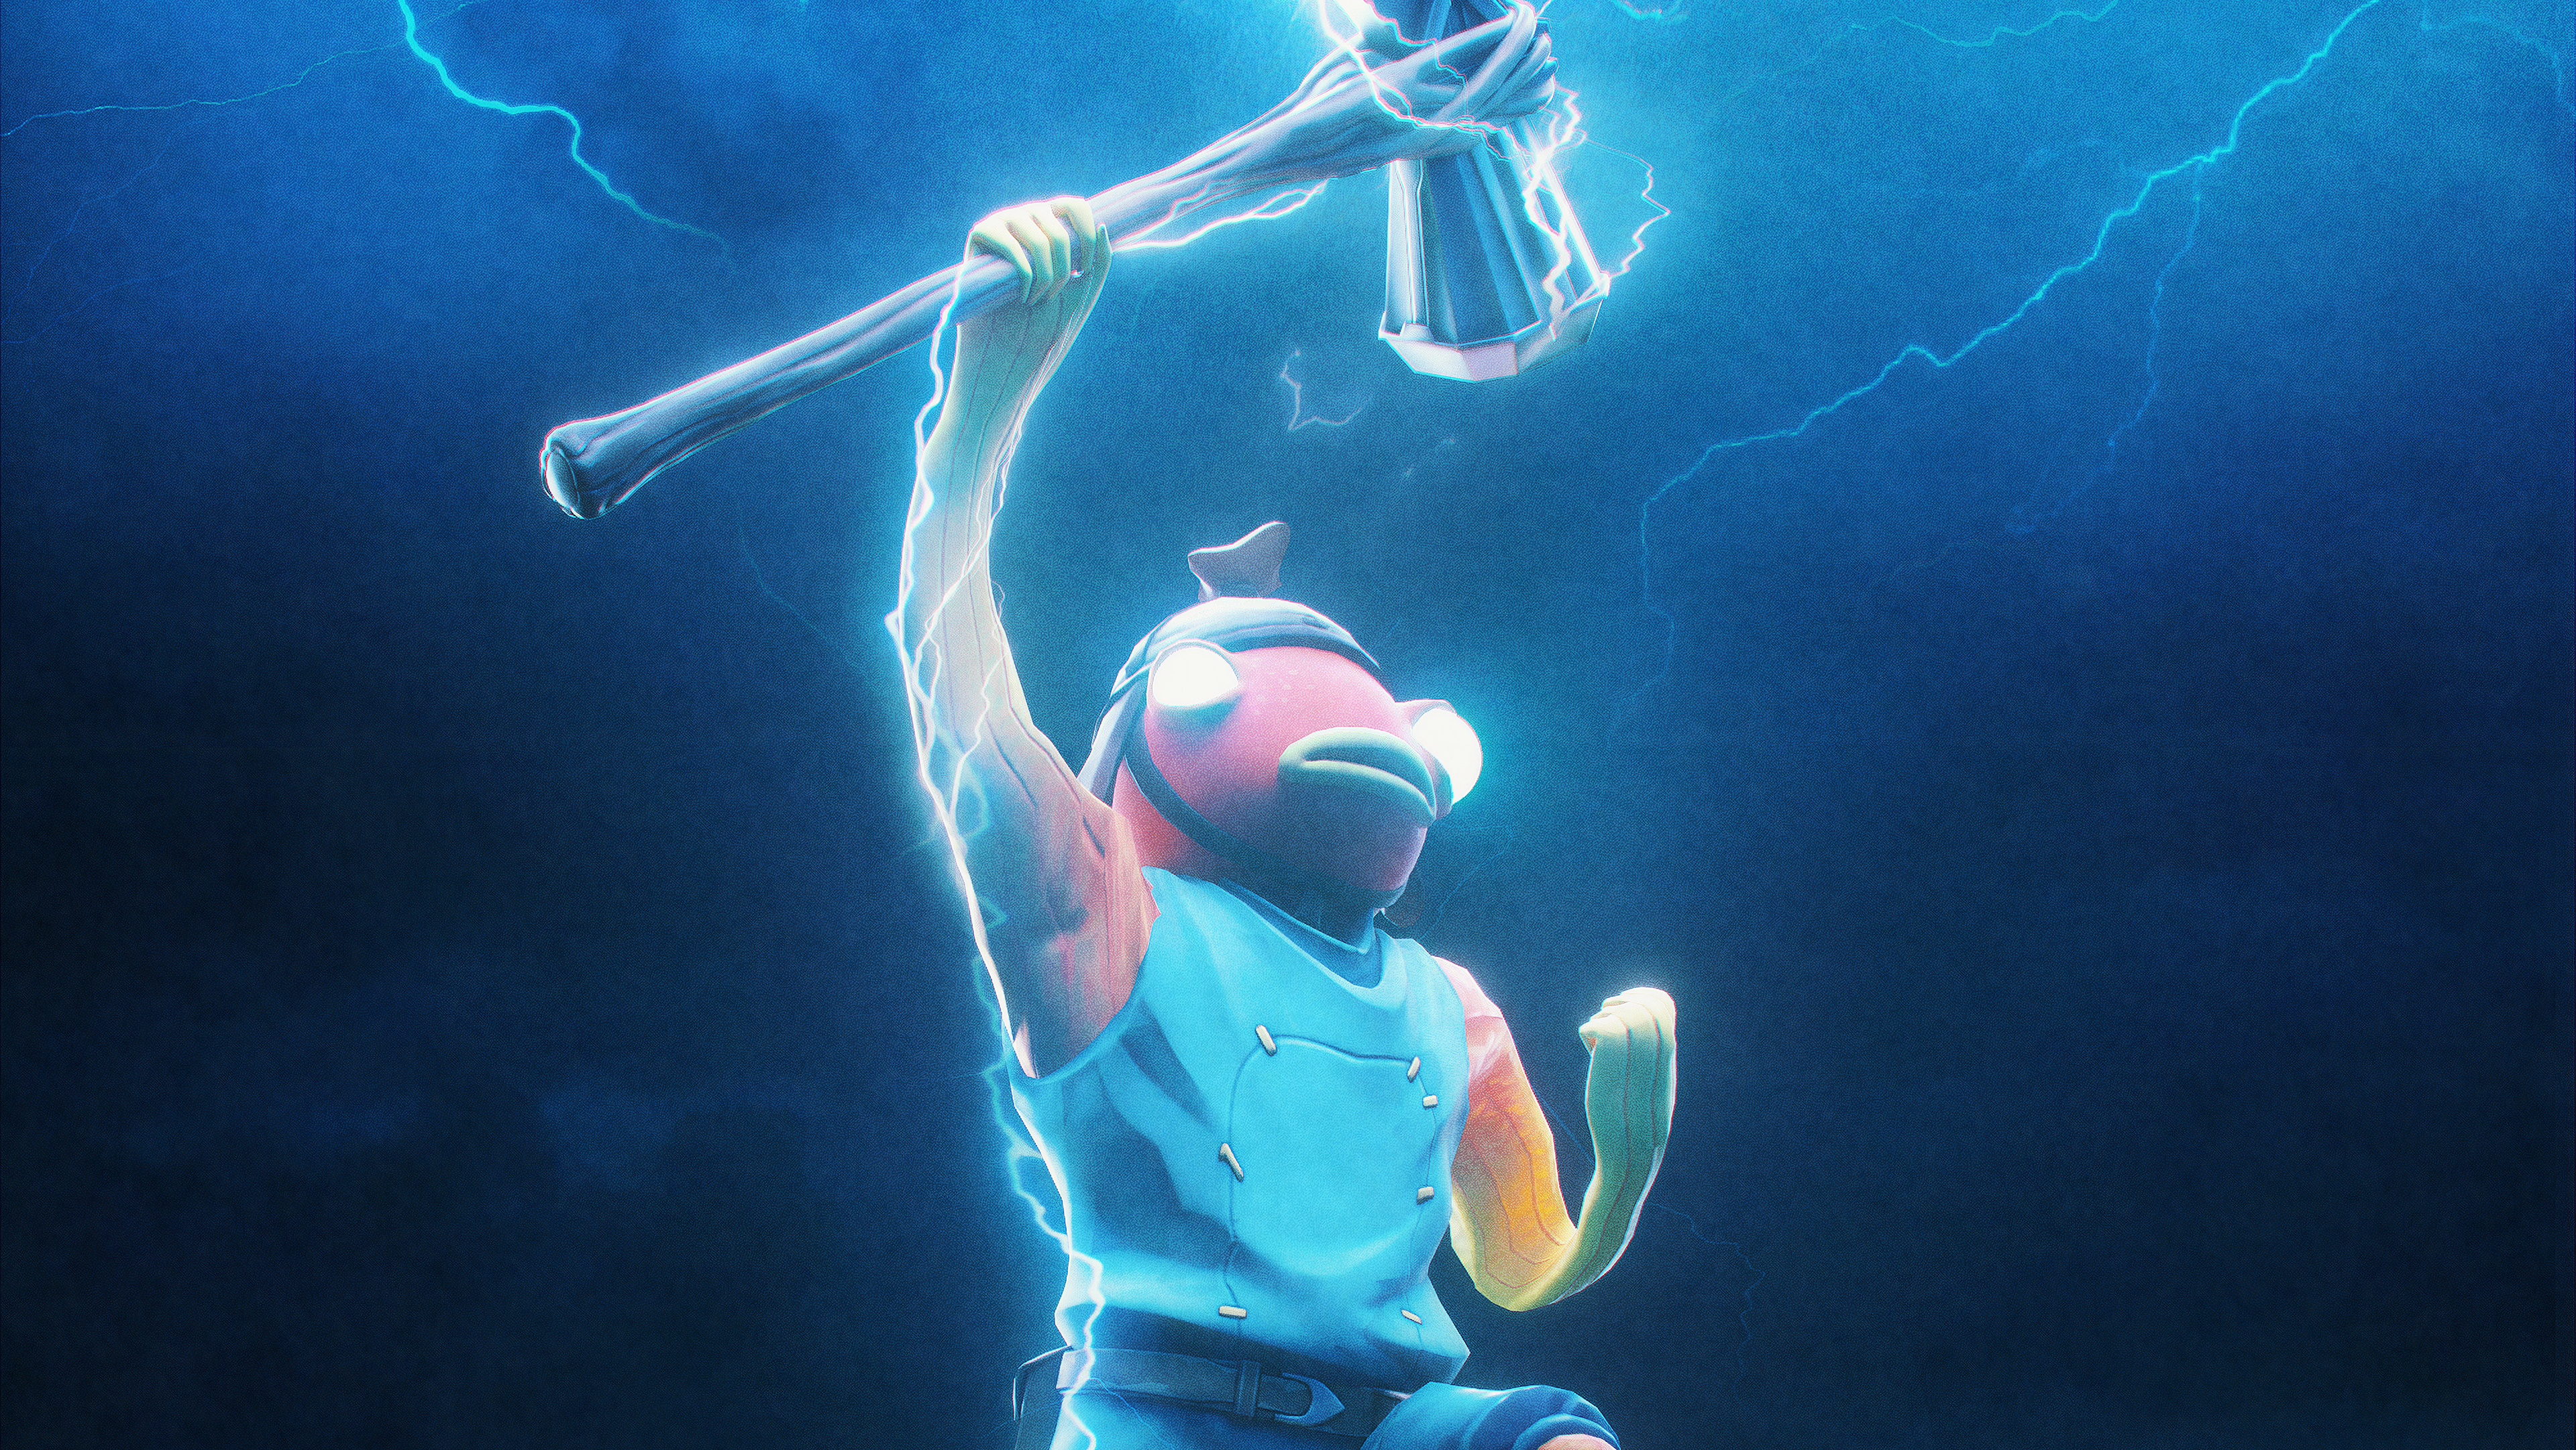 320x568 Stormbreaker Fortnite Axe 320x568 Resolution Wallpaper Hd Games 4k Wallpapers Images Photos And Background